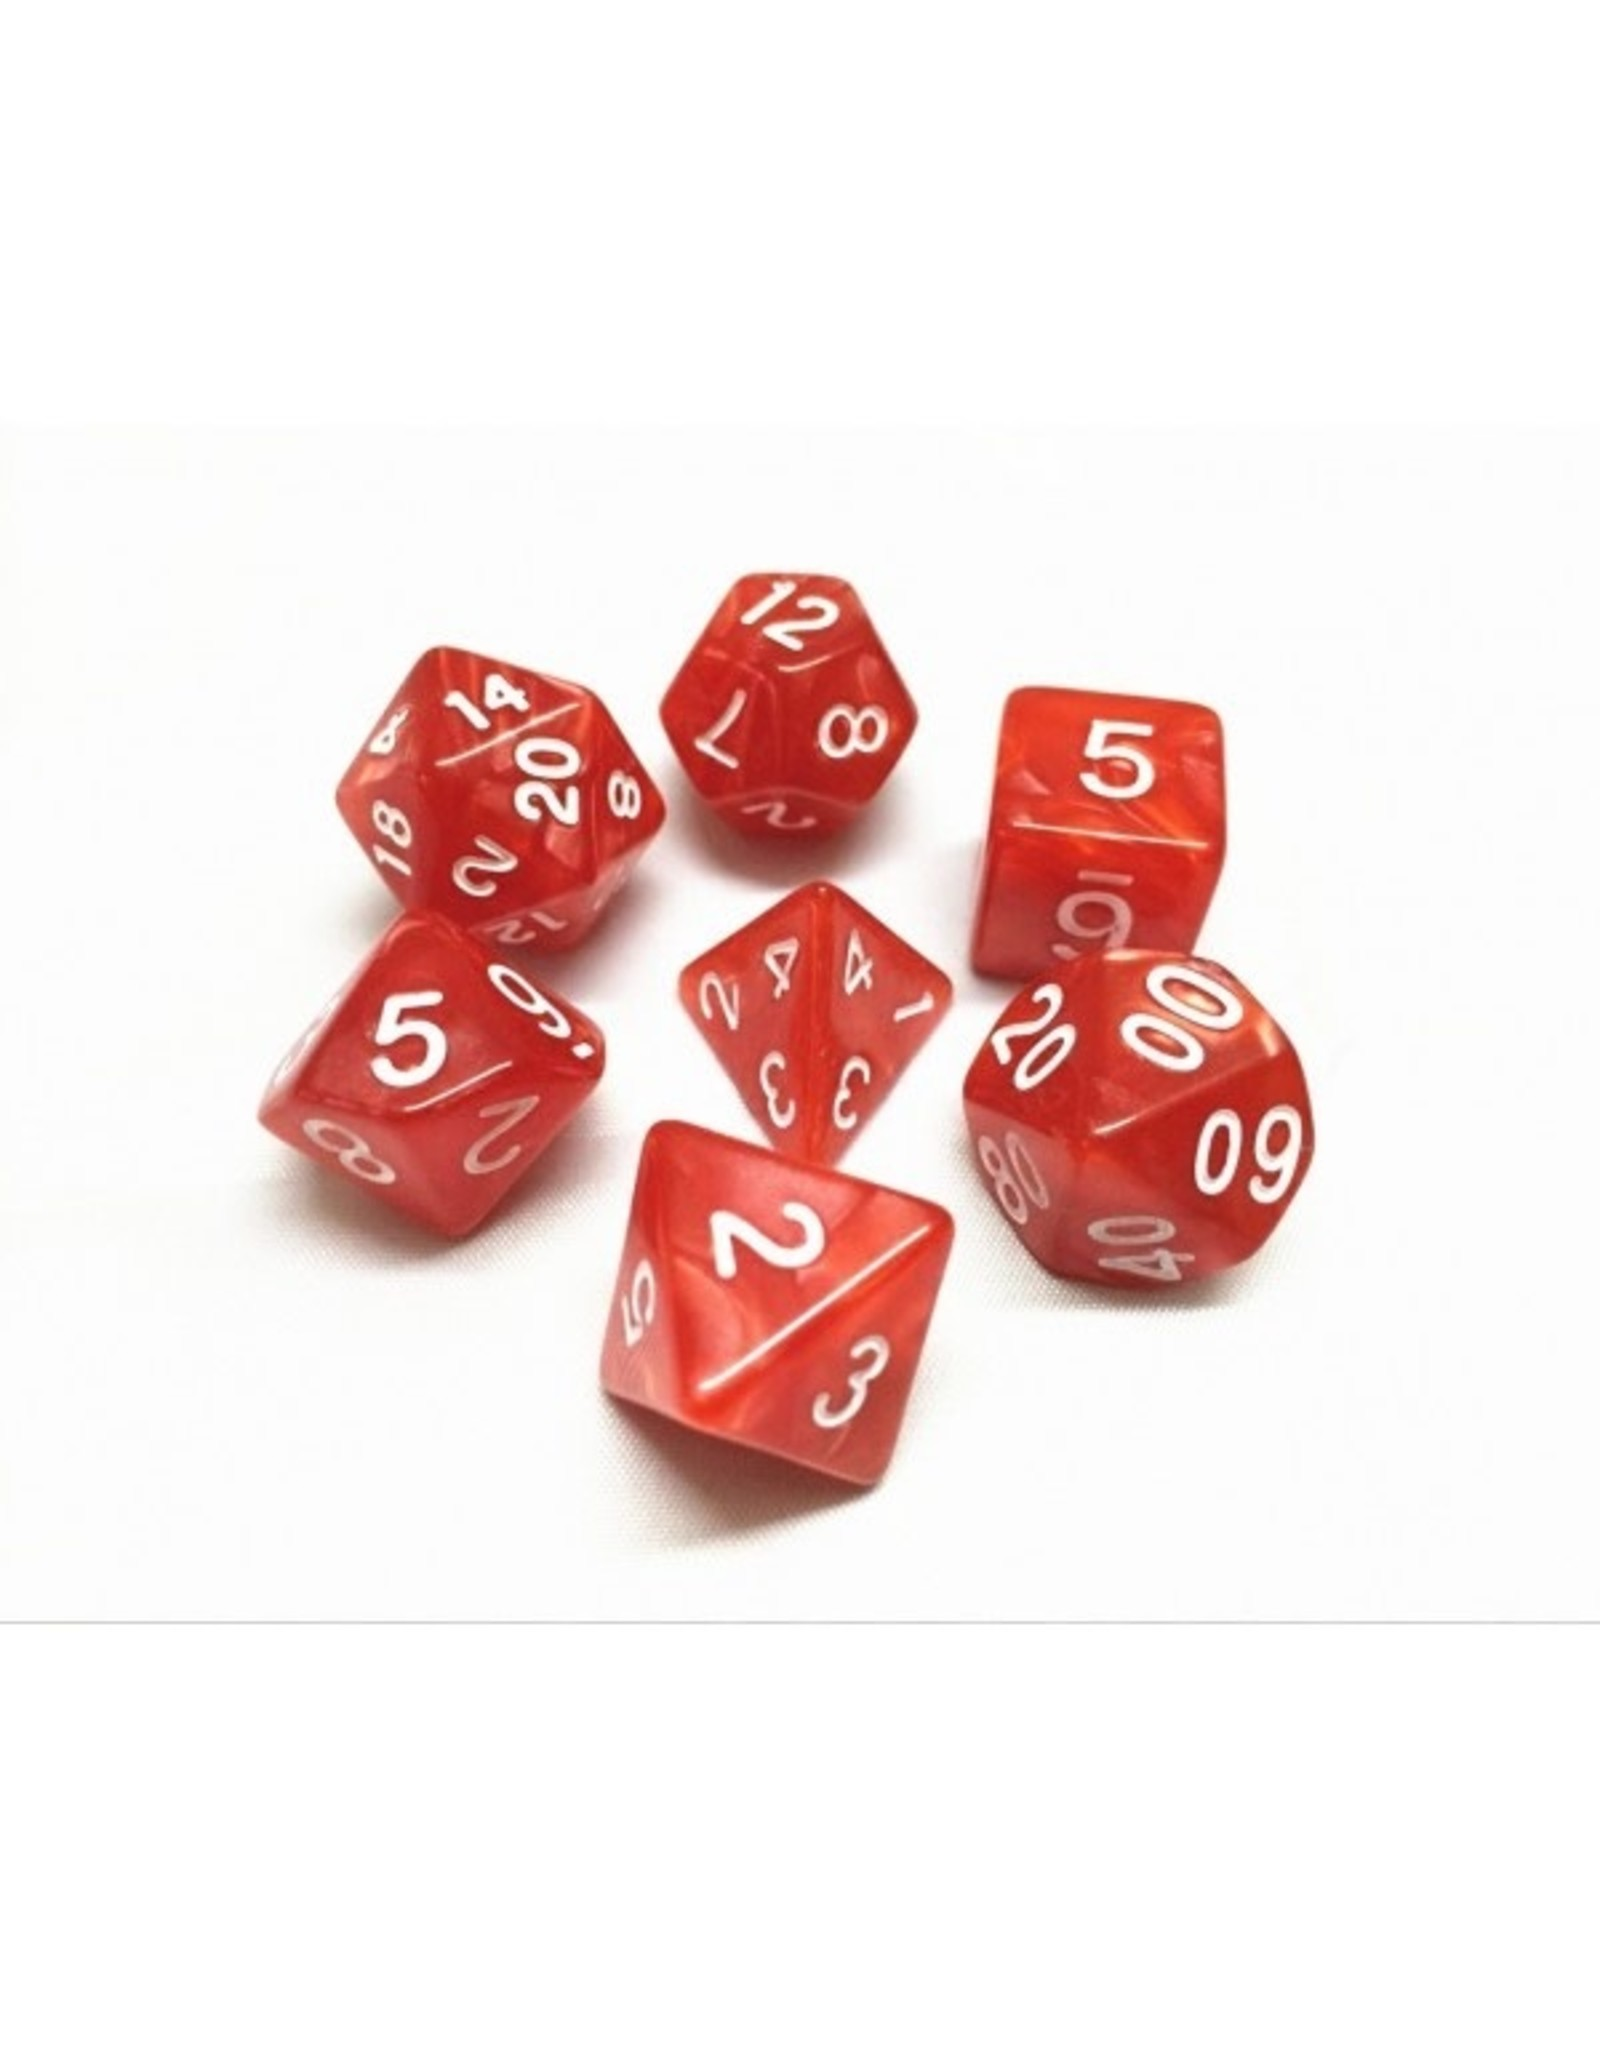 HD Dice Dice: 7-Set Pearl Red with White Numbers (HD)